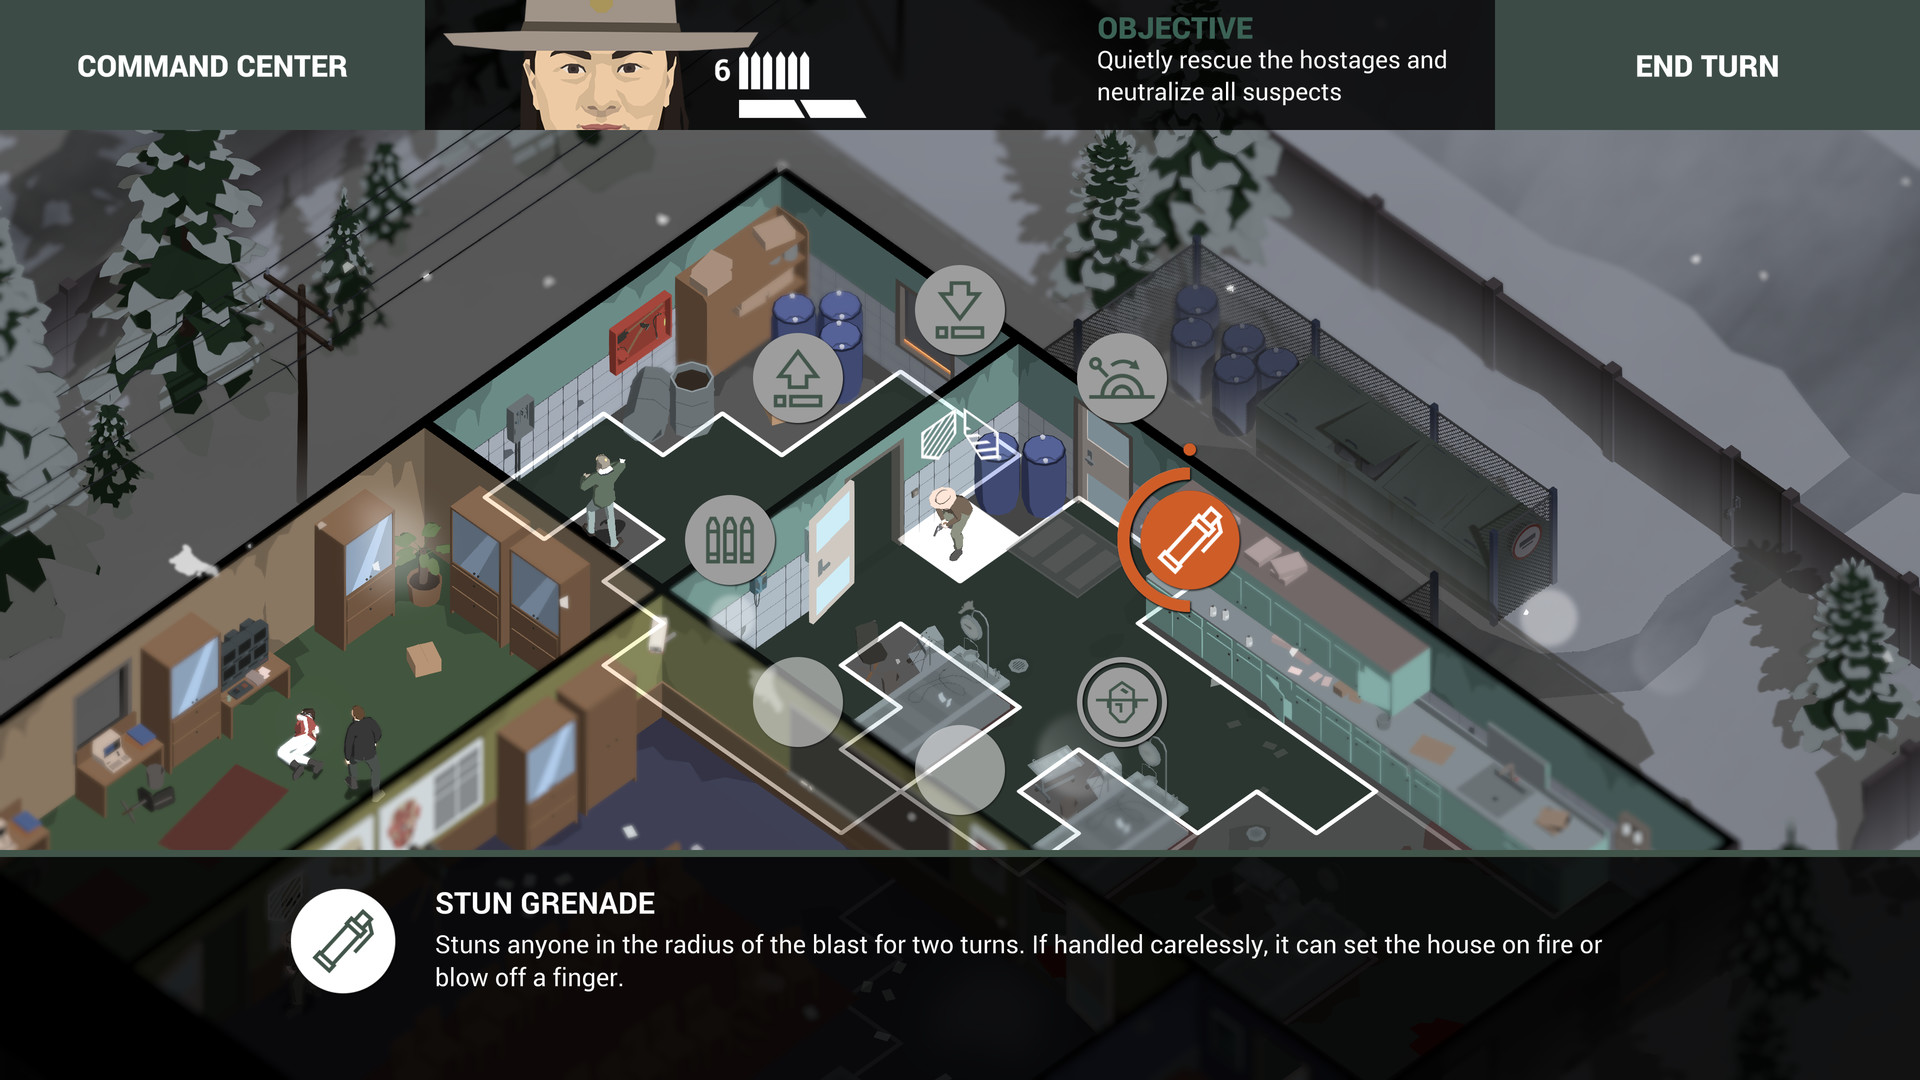 This is the police bundle download free trial